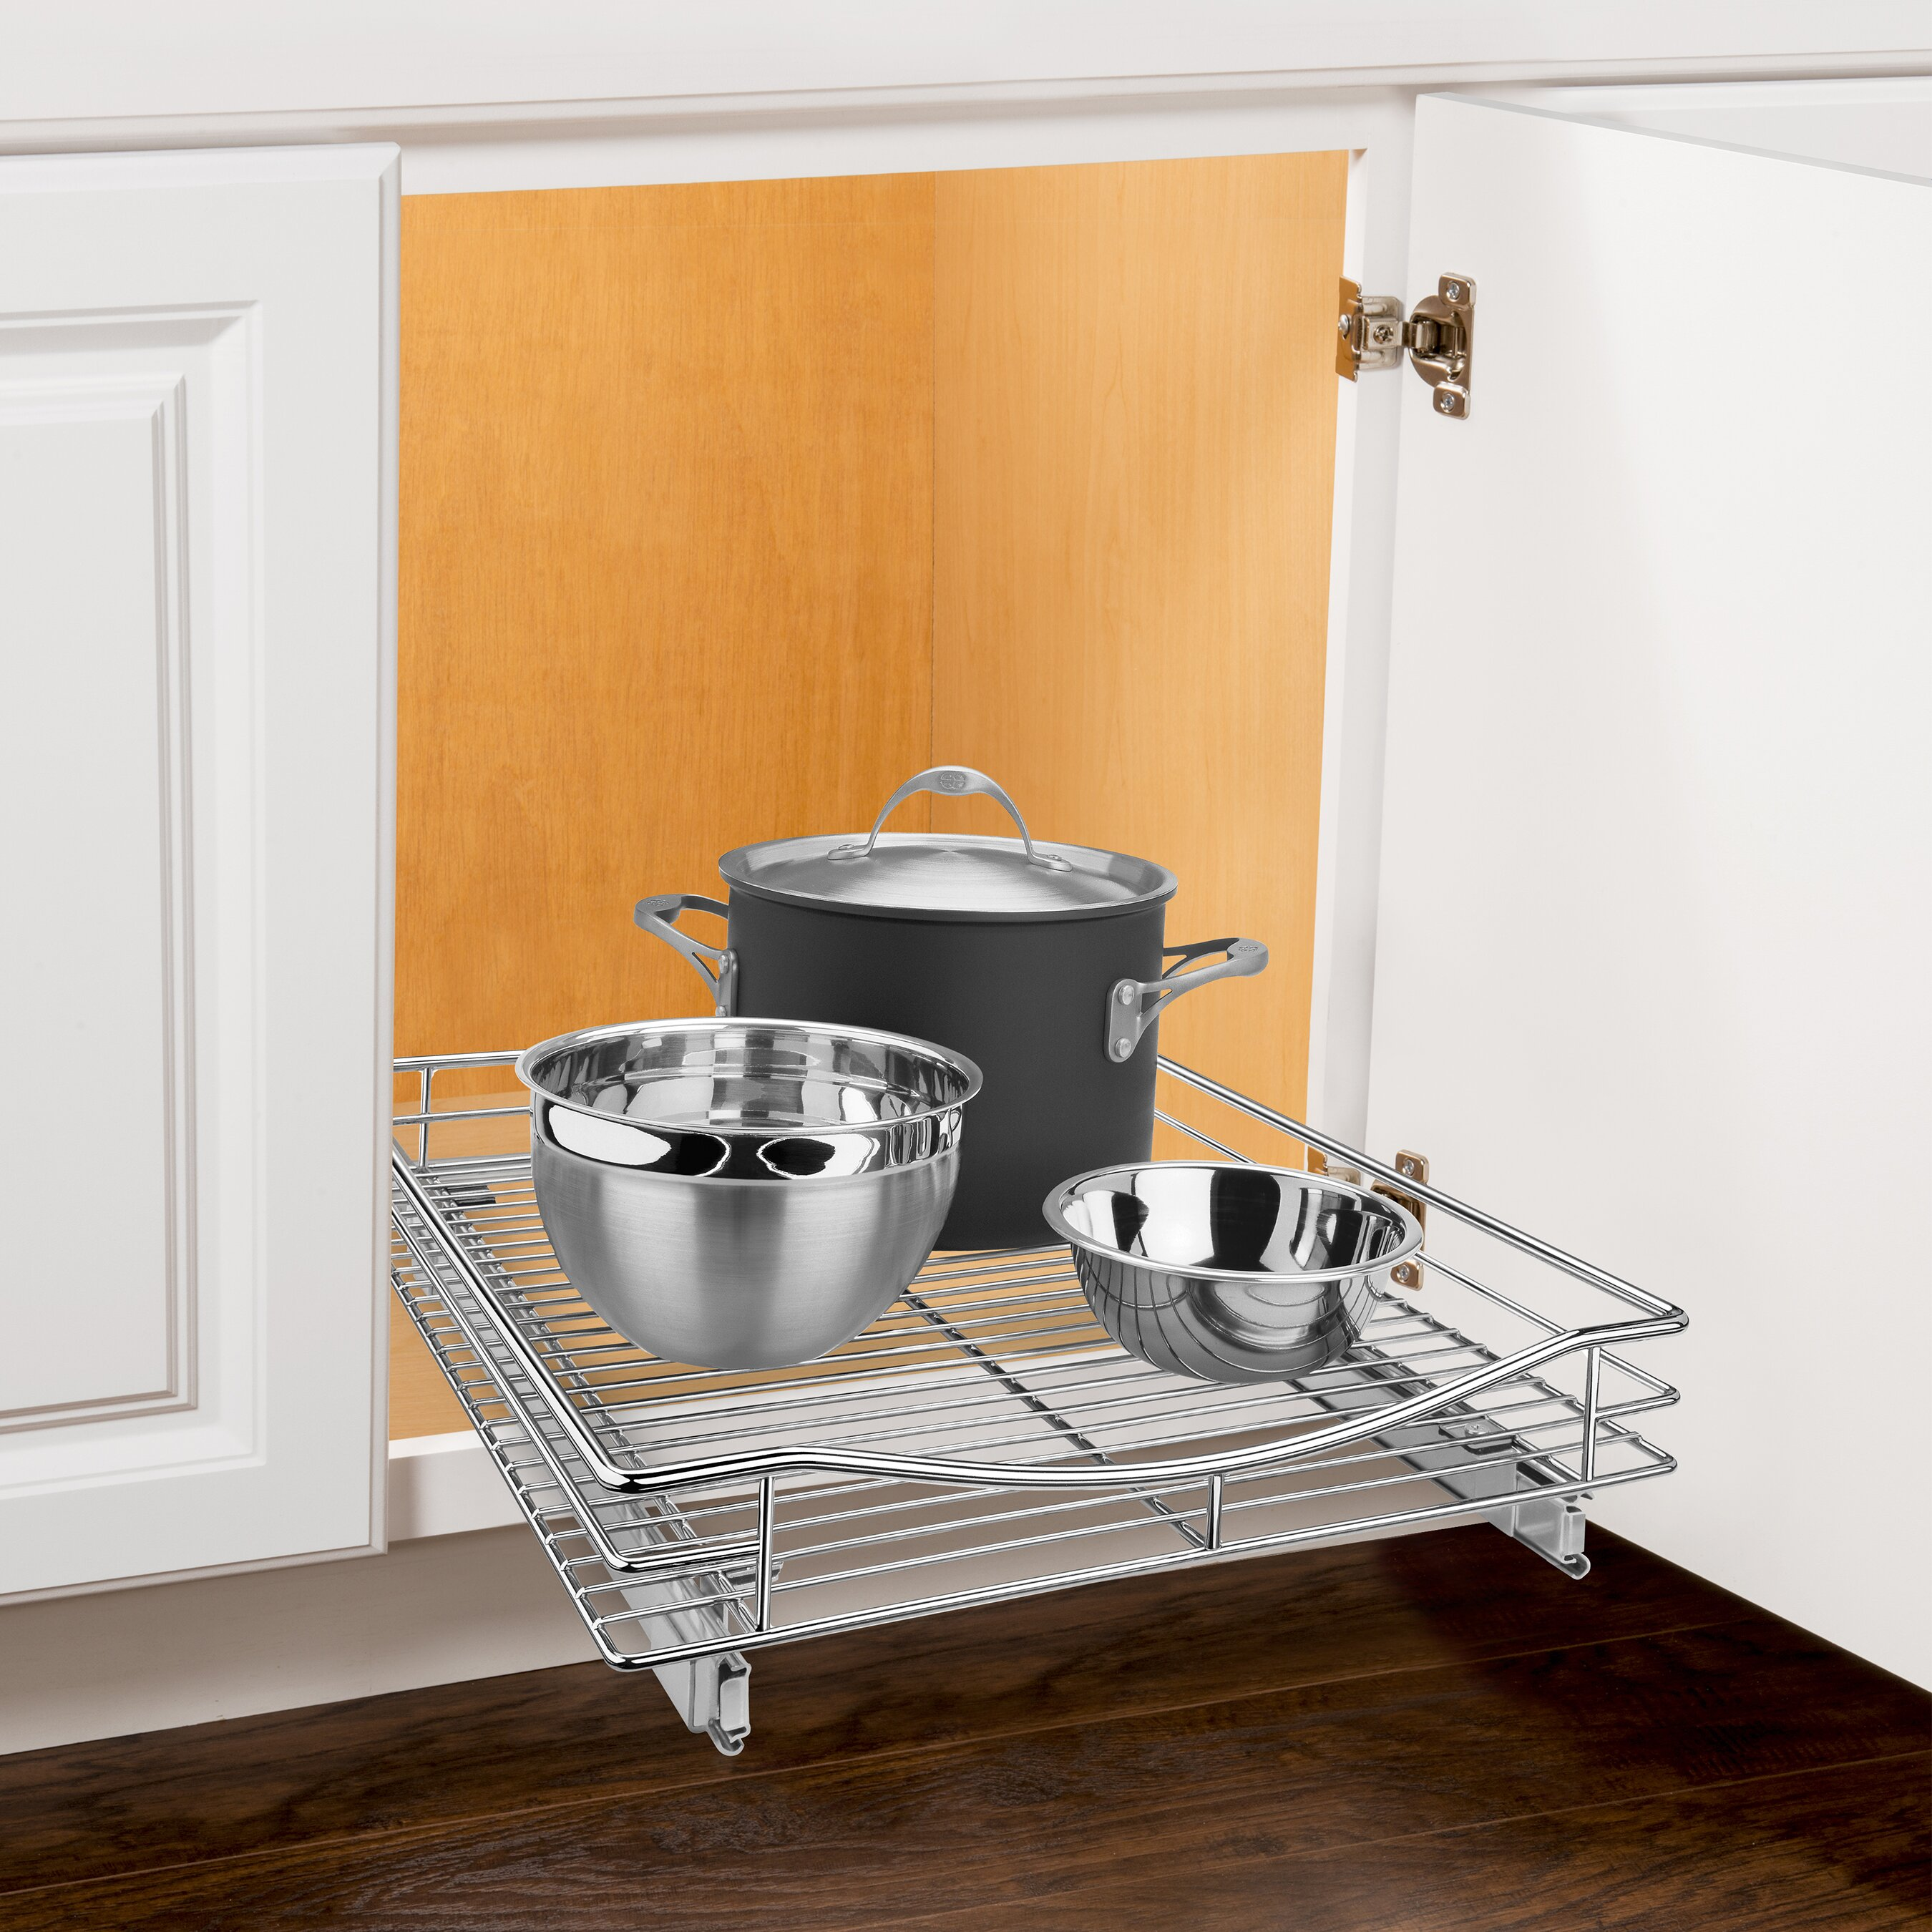 Pull Out Sliding Metal Kitchen Pot Cabinet Storage: Lynk Roll Out Cabinet Organizer